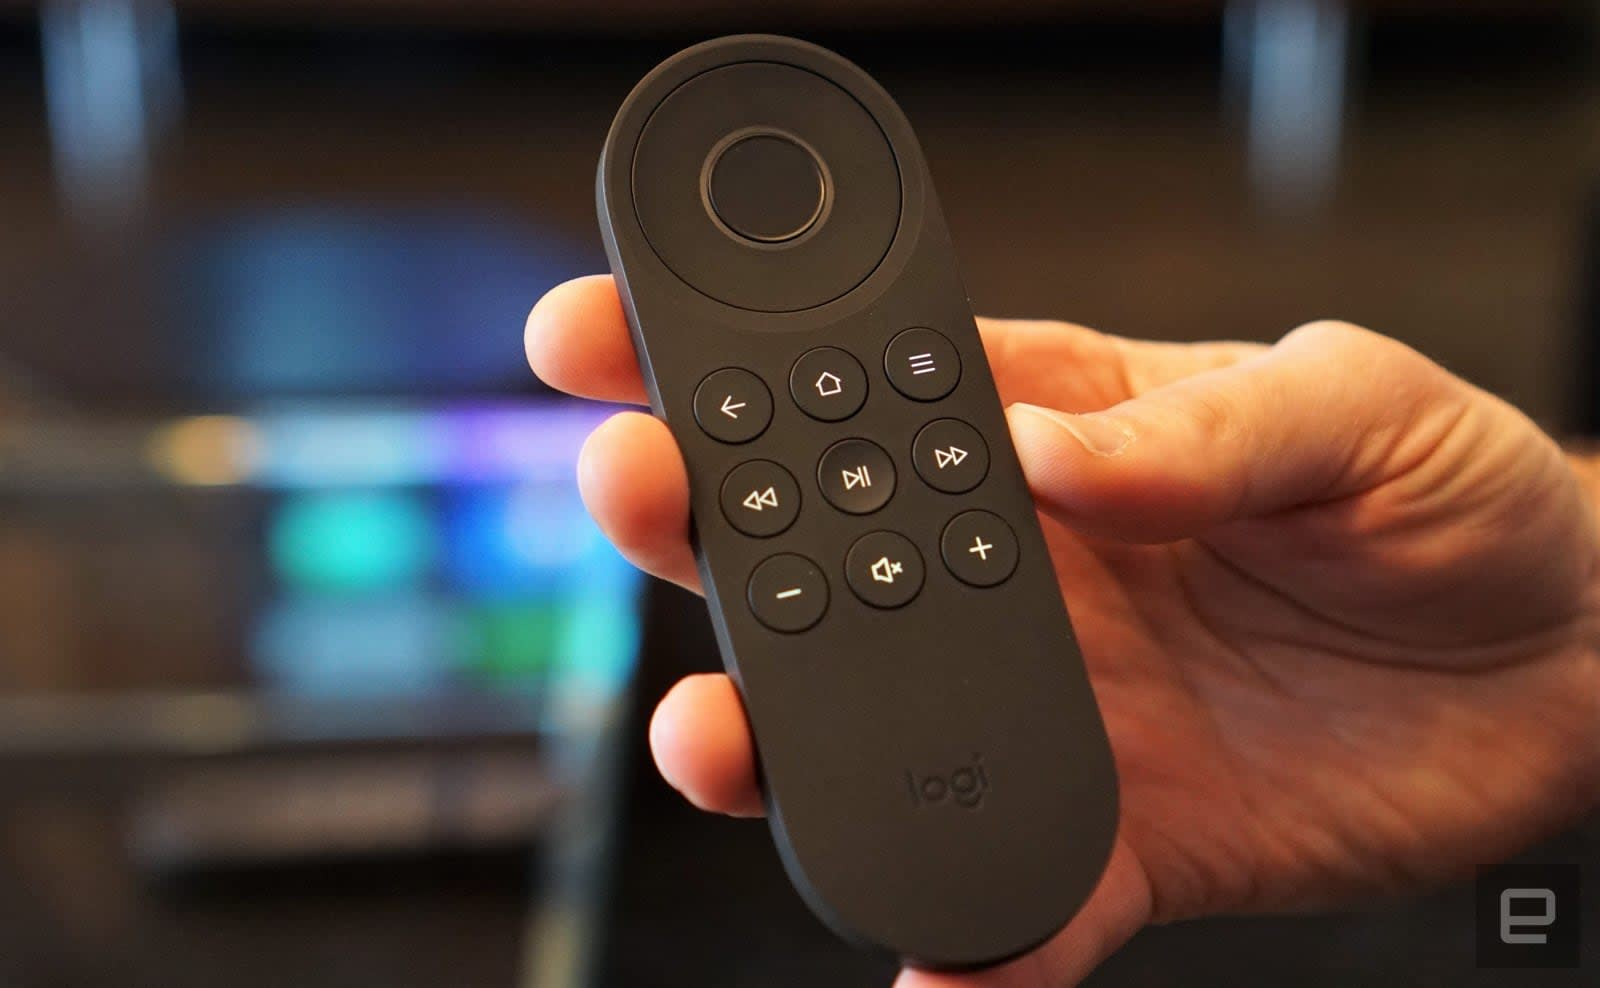 Logitech's Harmony Express is a sleek Alexa-powered universal remote